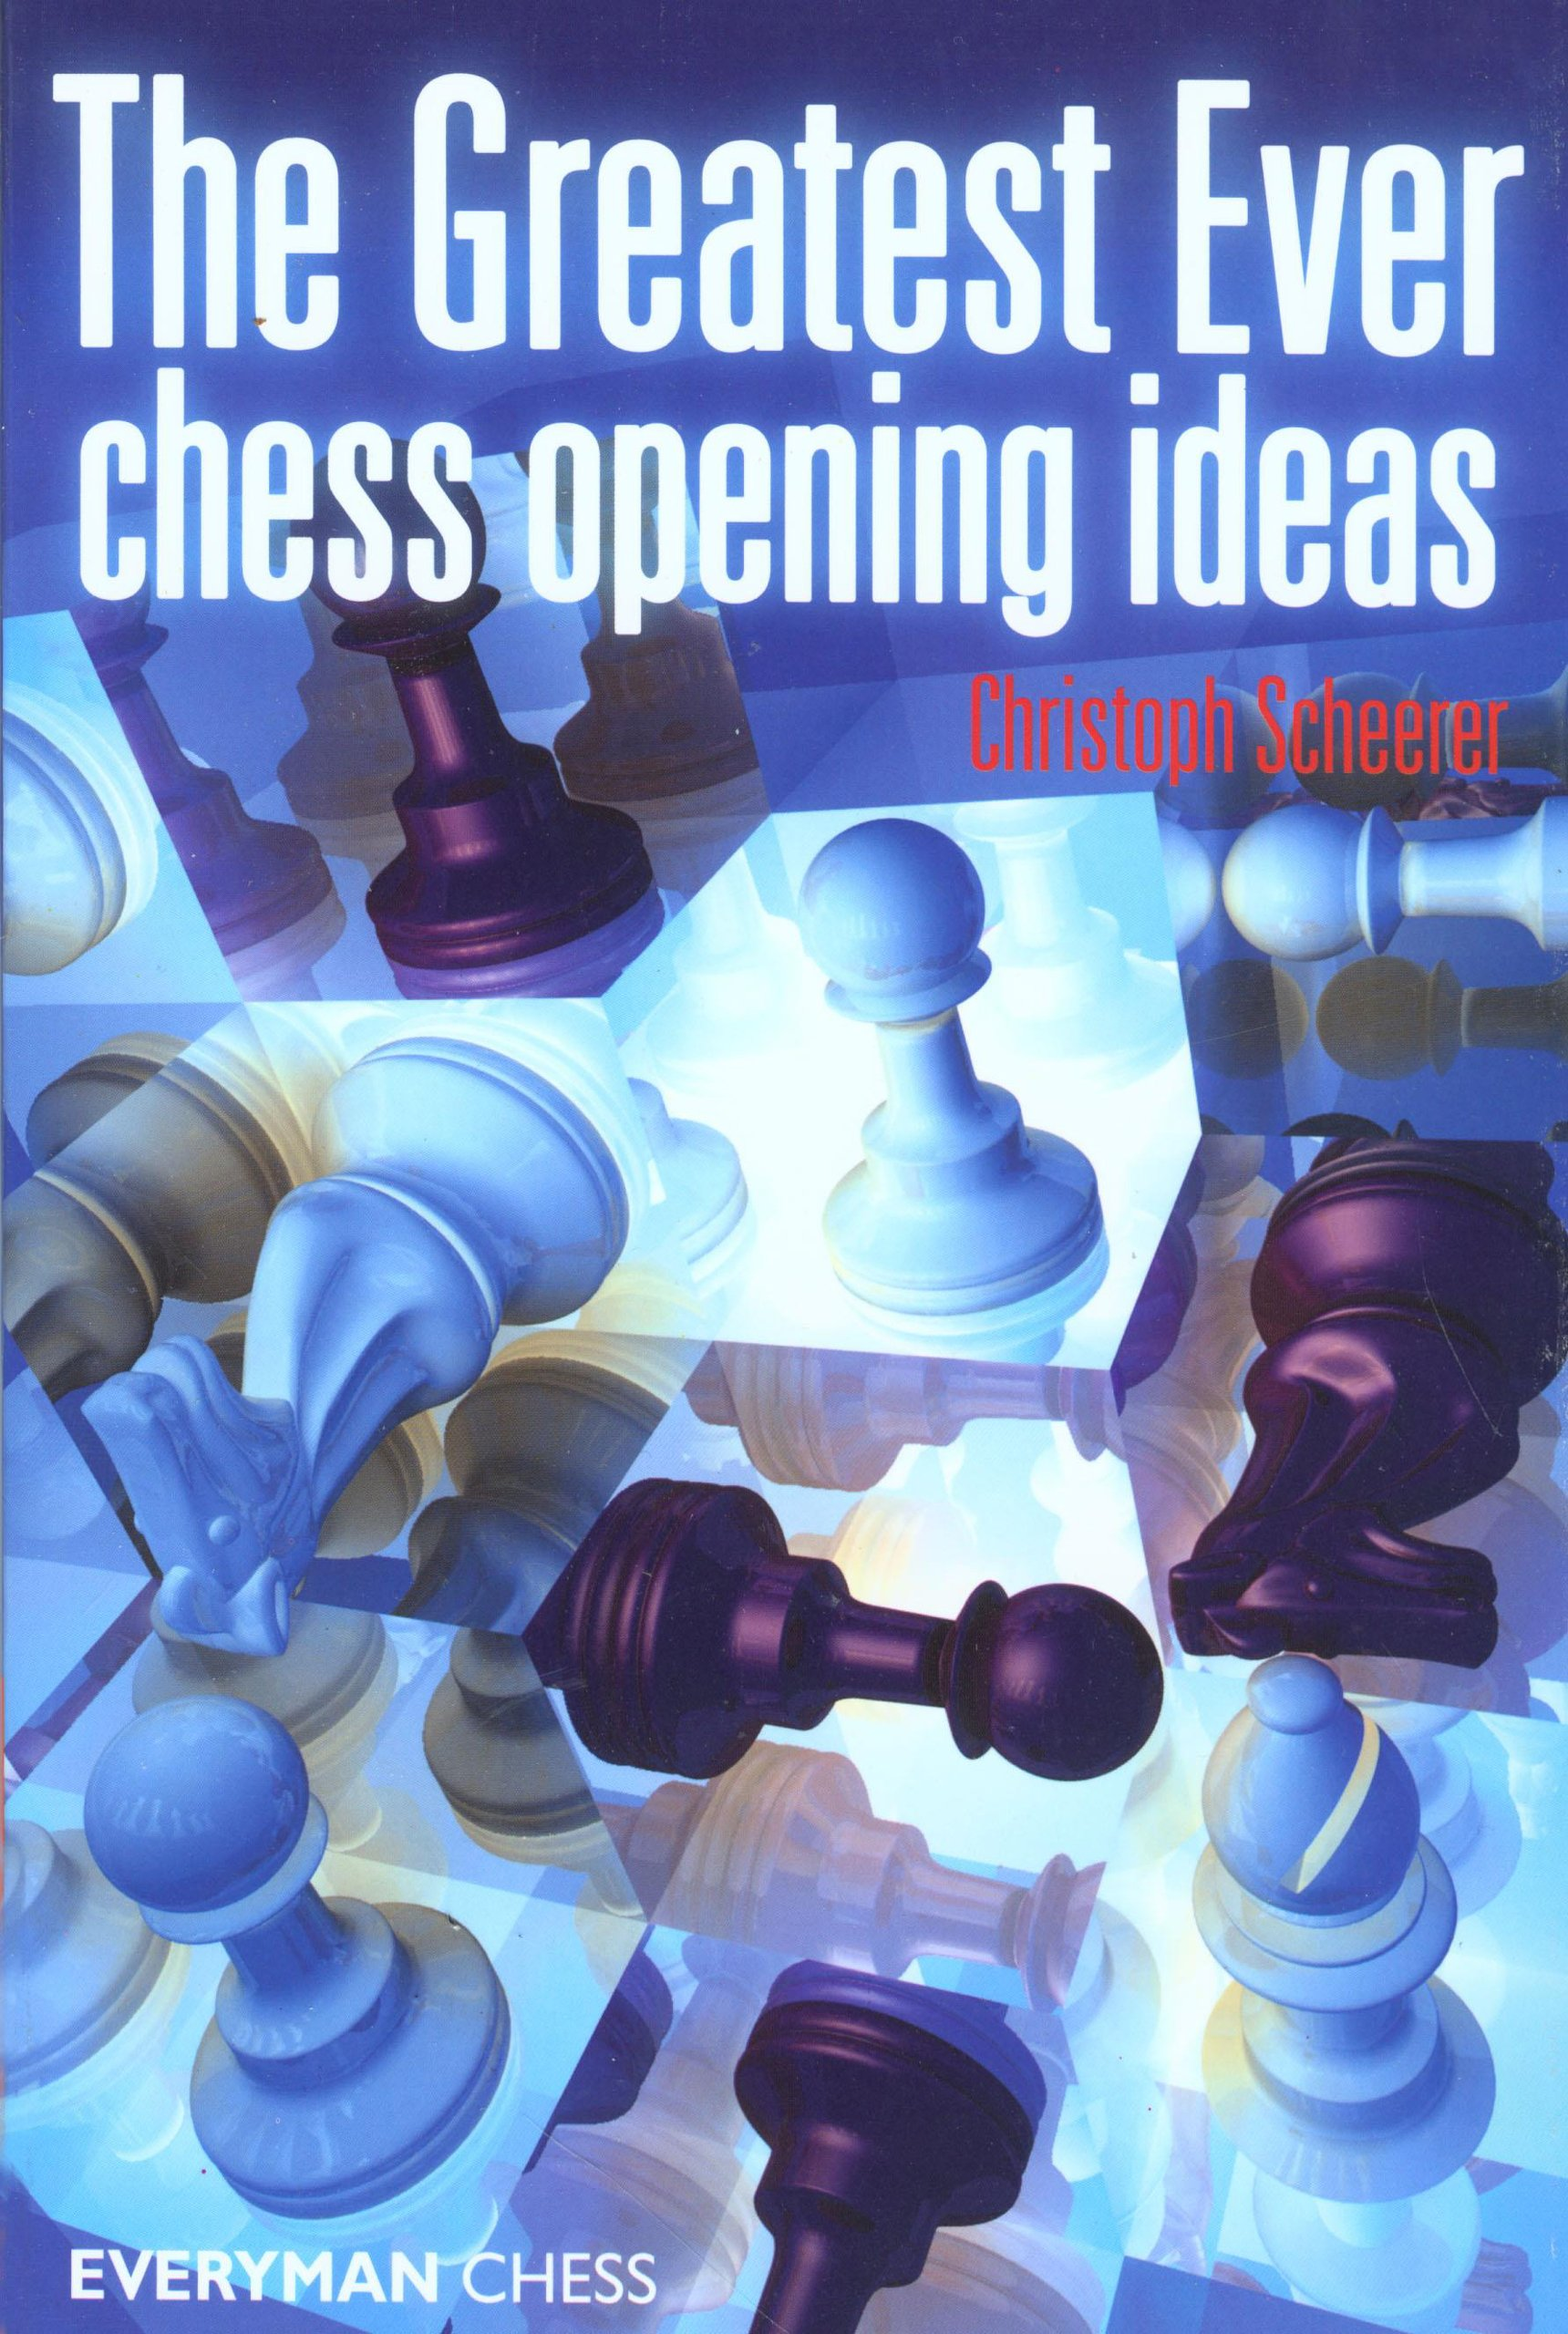 The Greatest Ever Chess Opening Ideas